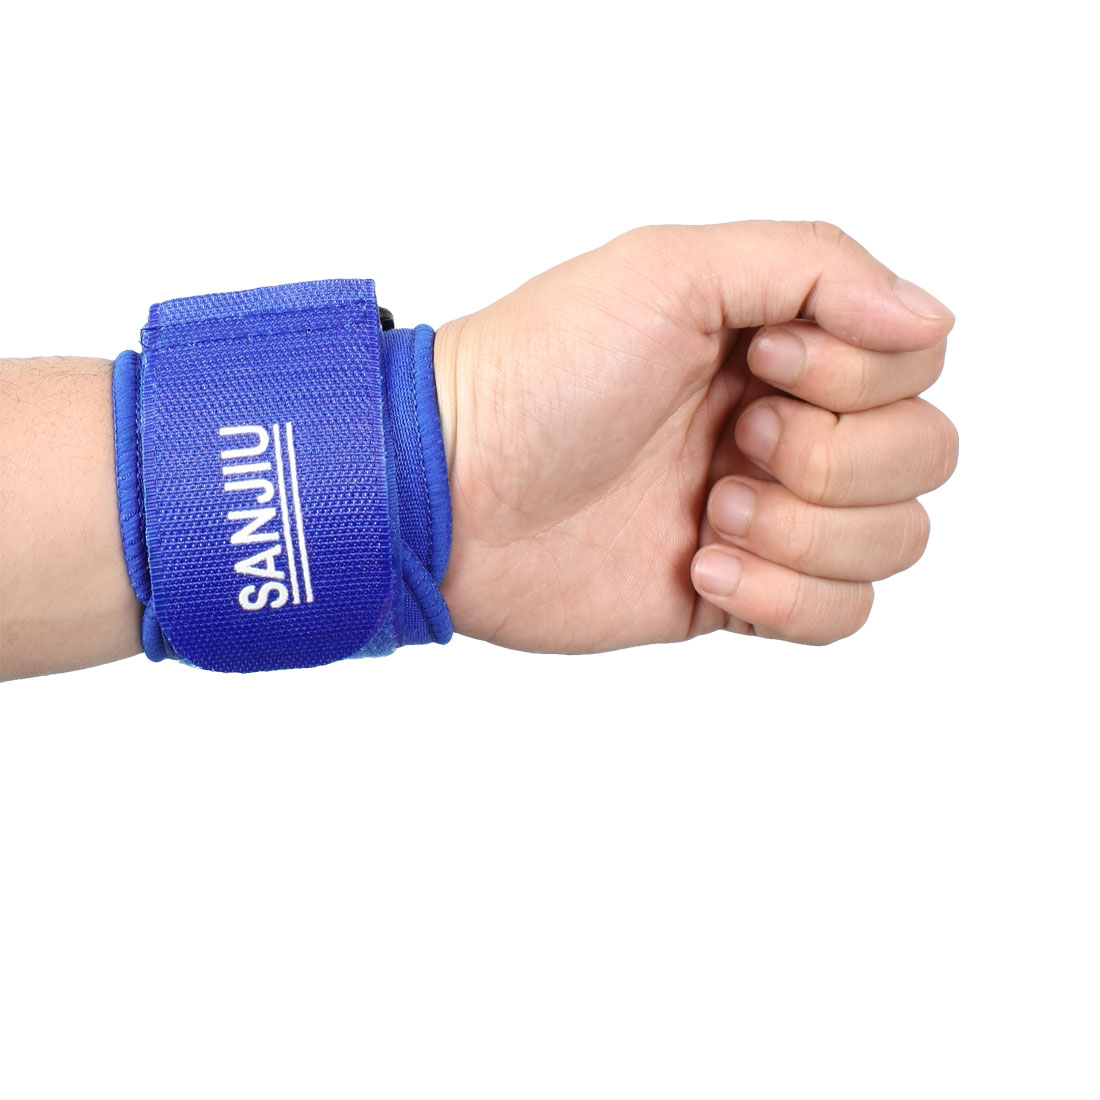 Sports Adjustable Detachable Fastener Neoprene Wrist Support Protector Blue